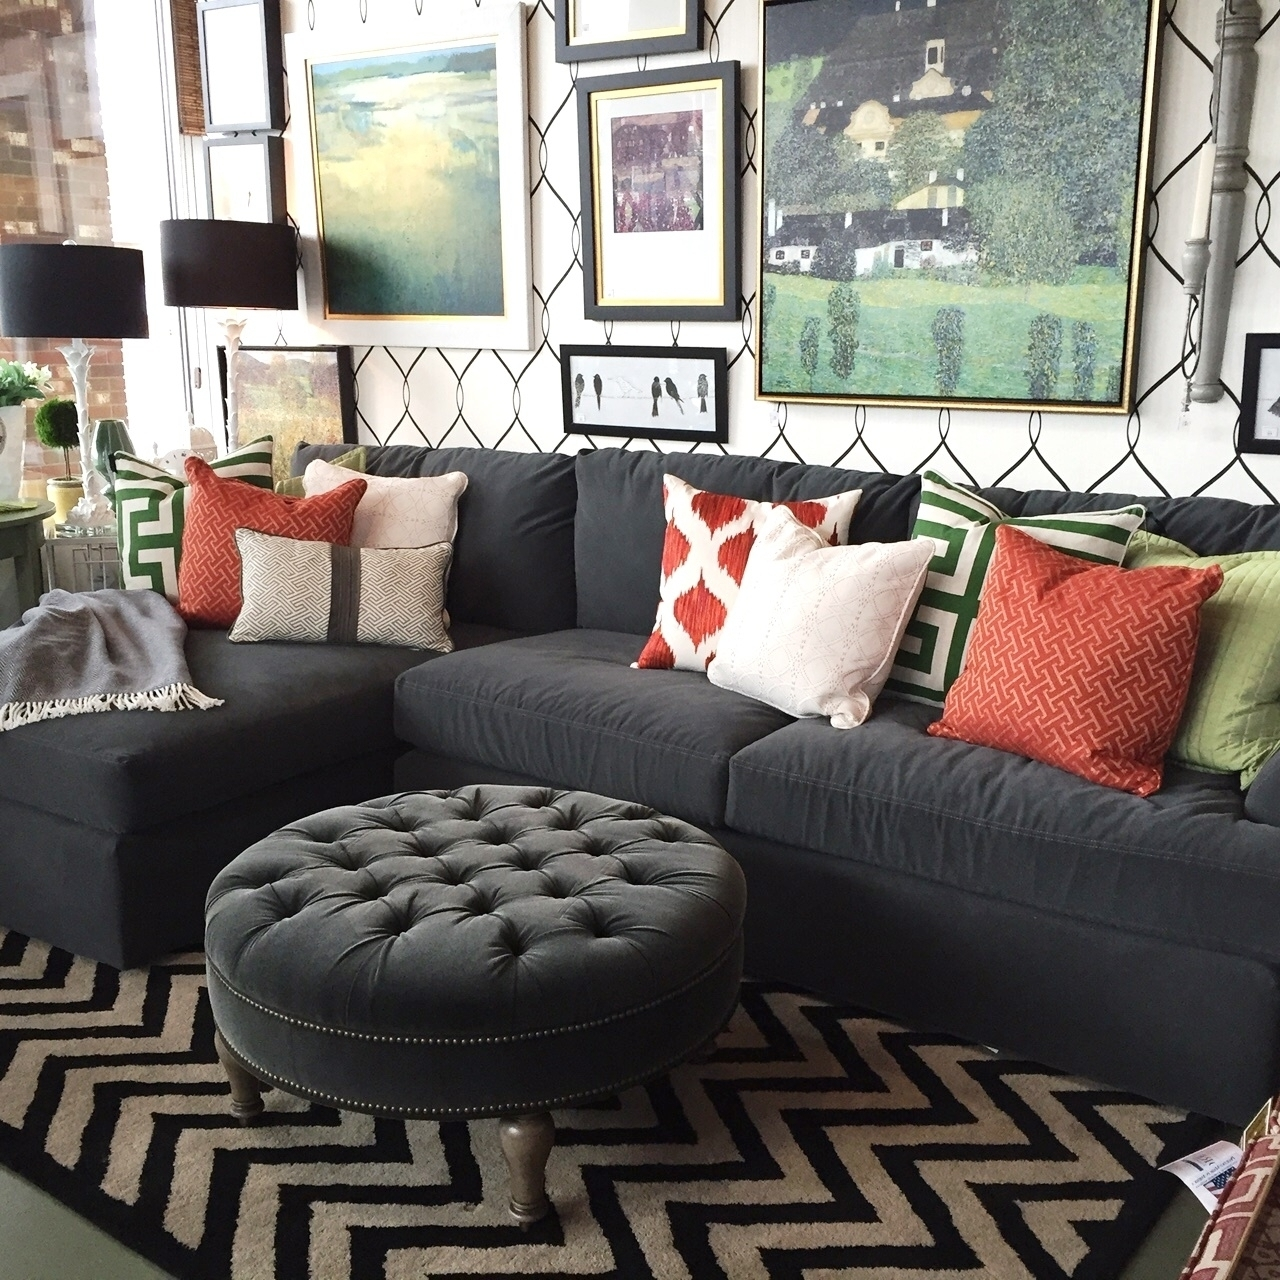 2018 Sectional Sofas In Small Spaces Trellis Of Erie Regarding Small Inside Sectional Sofas For Small Areas (View 15 of 15)